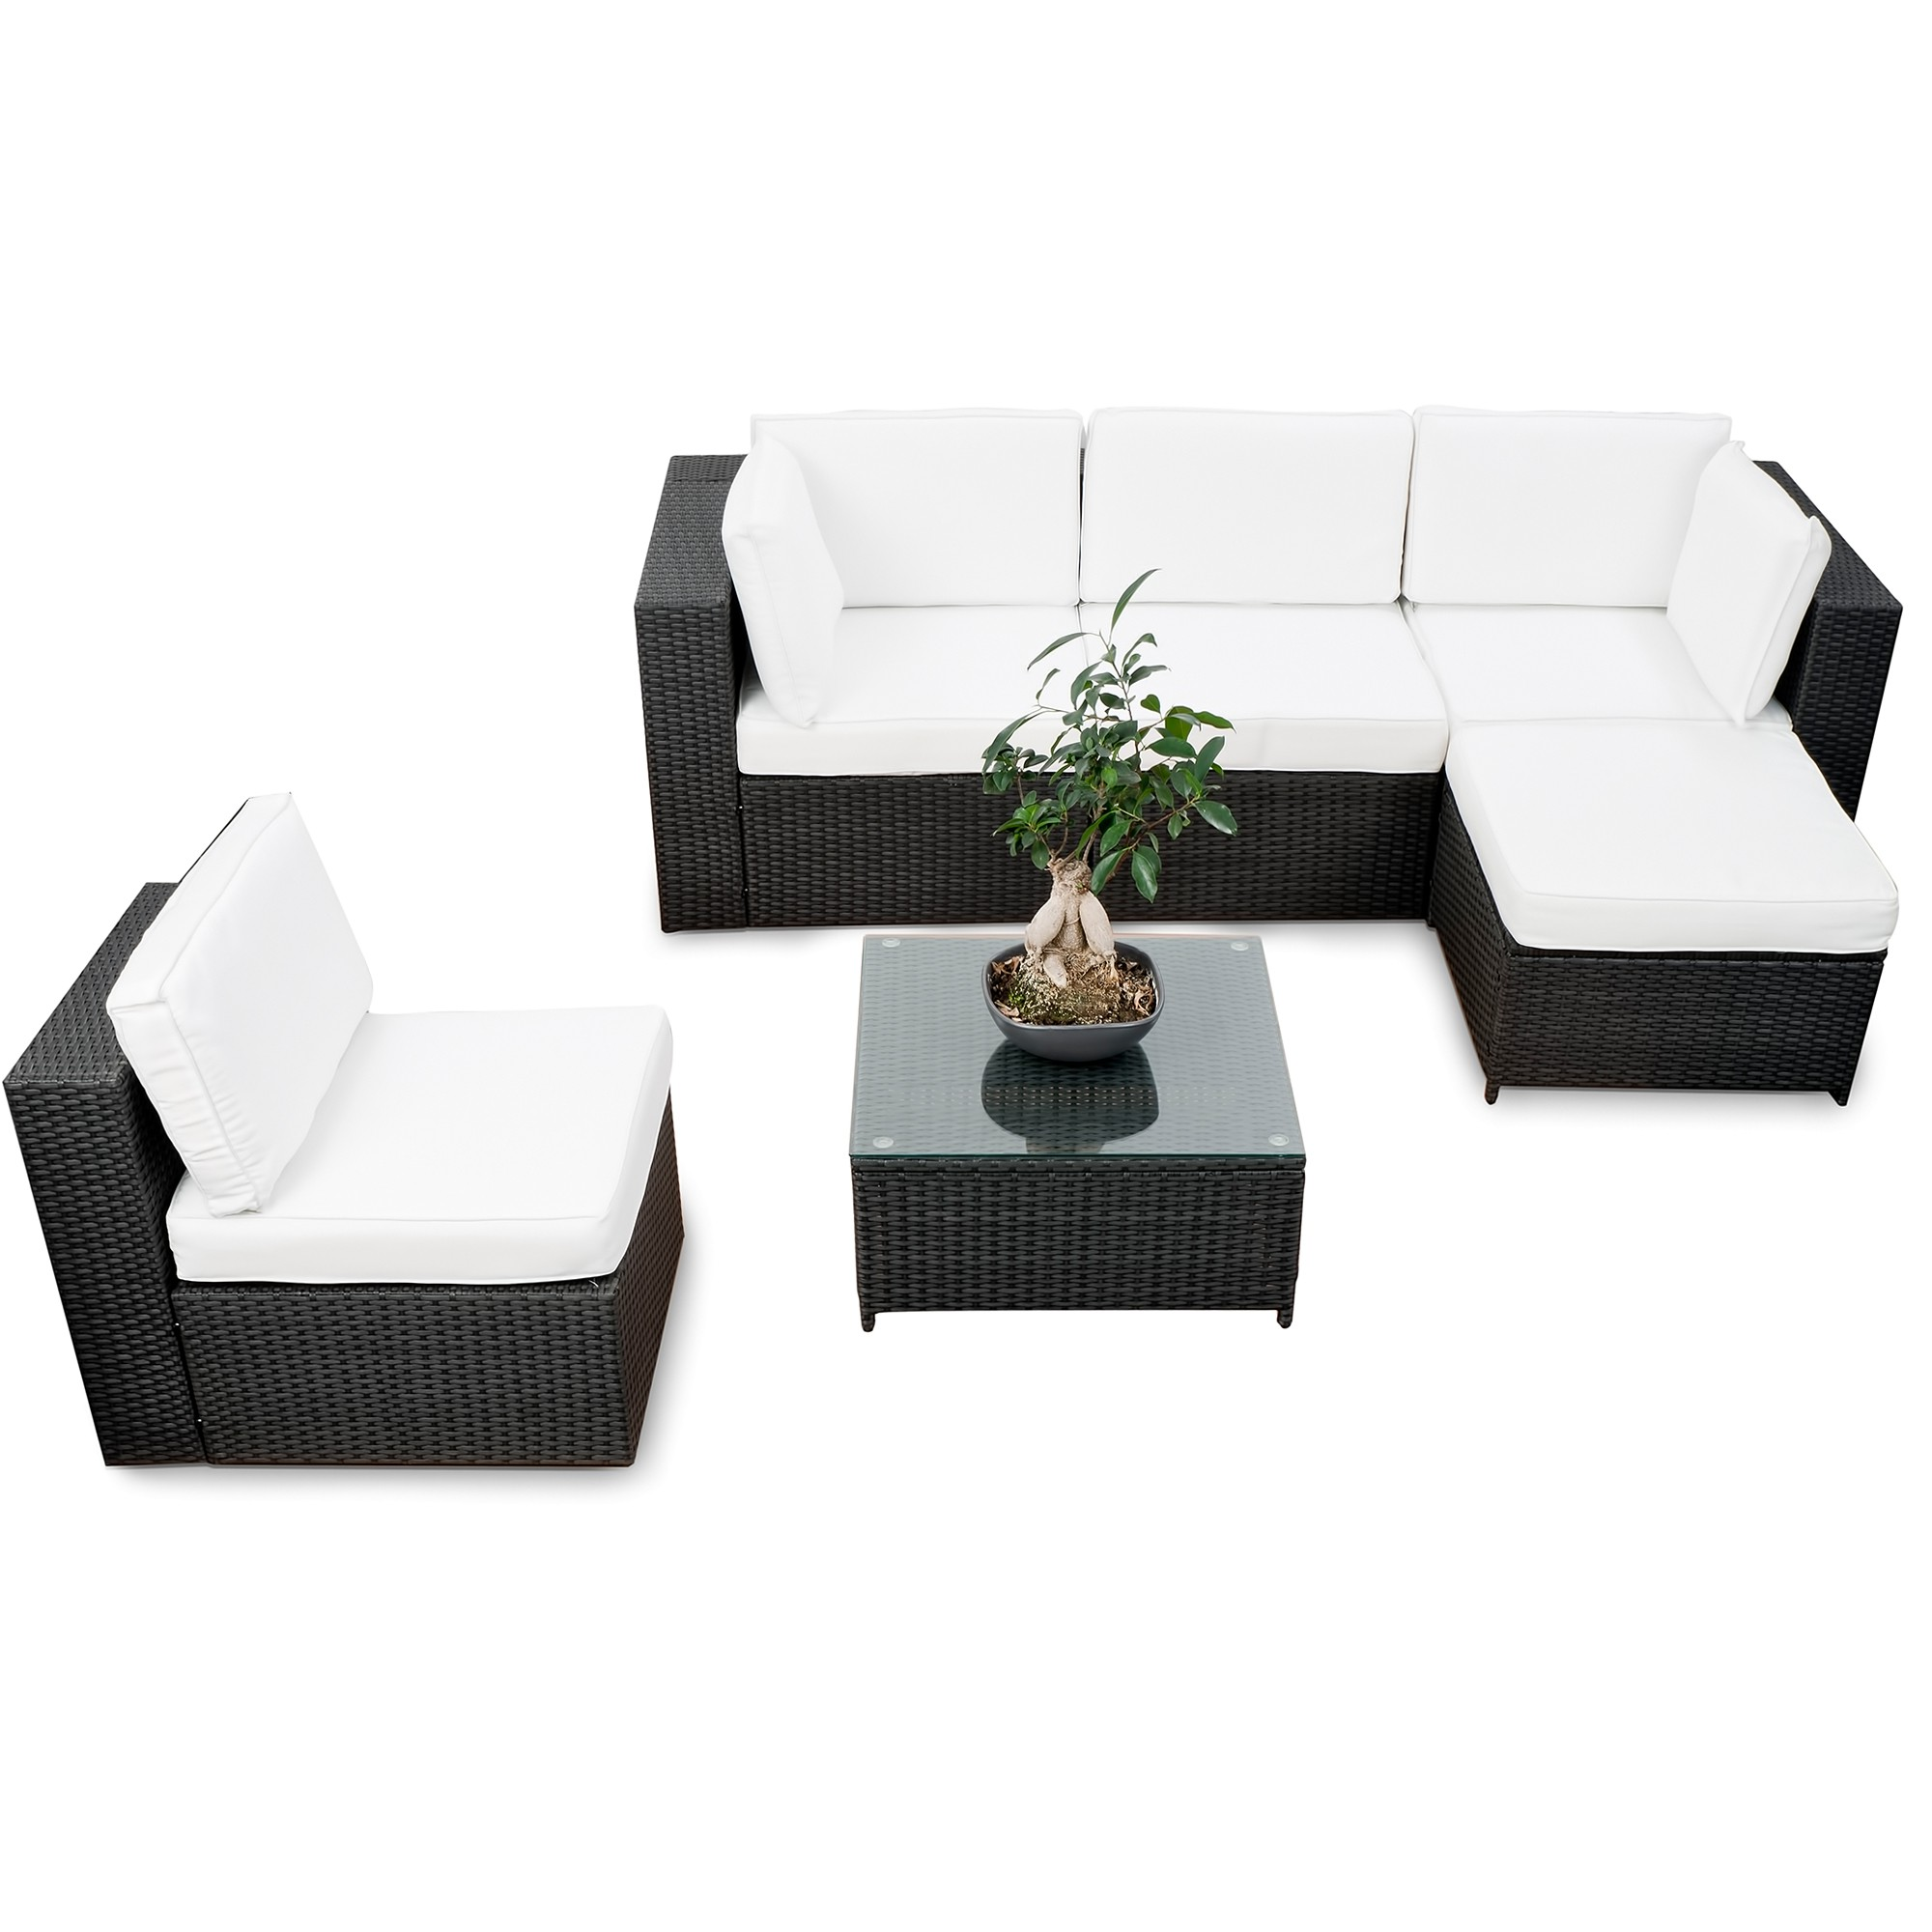 gartenlounge rattan g nstig rattan garten lounge kaufen. Black Bedroom Furniture Sets. Home Design Ideas